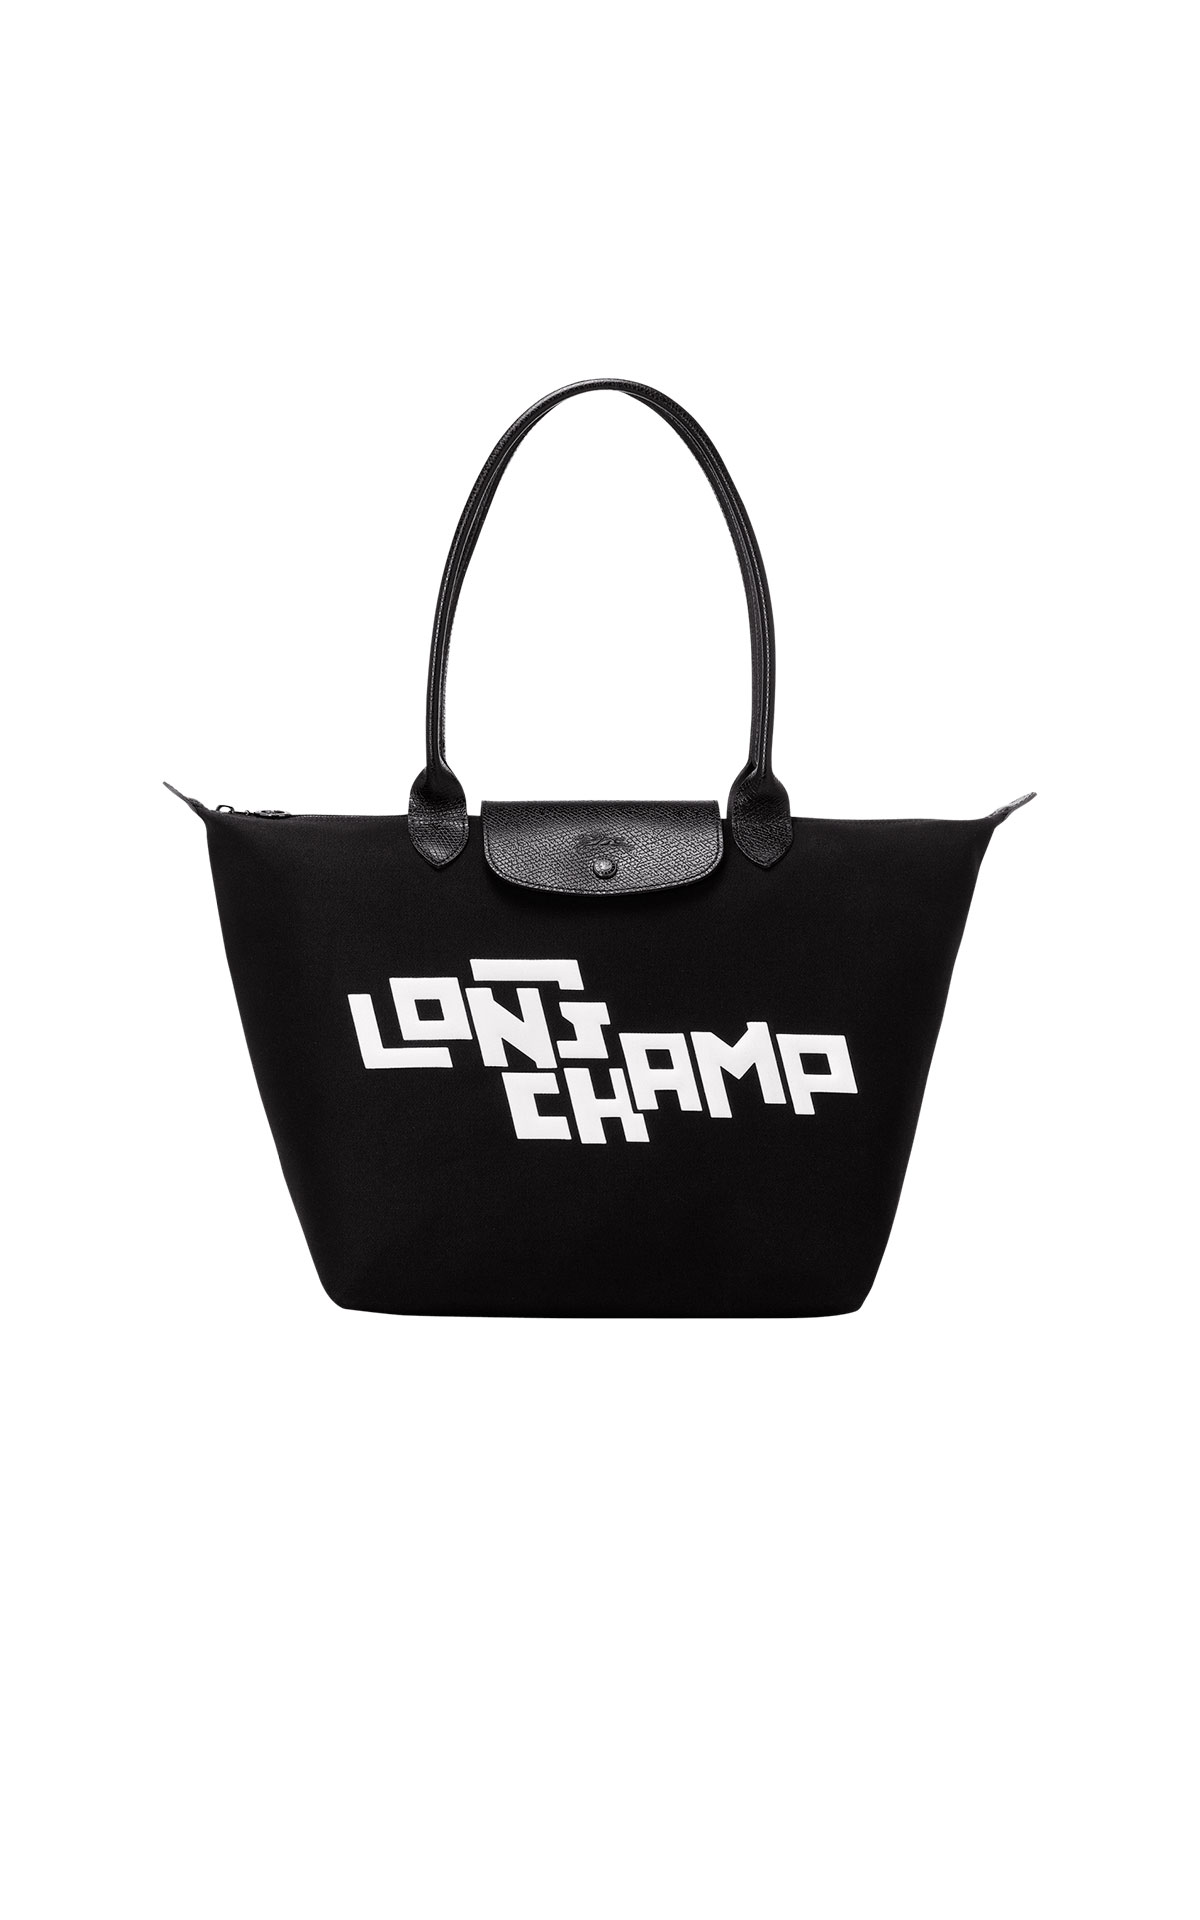 Black Pliage bag with white logo Longchamp